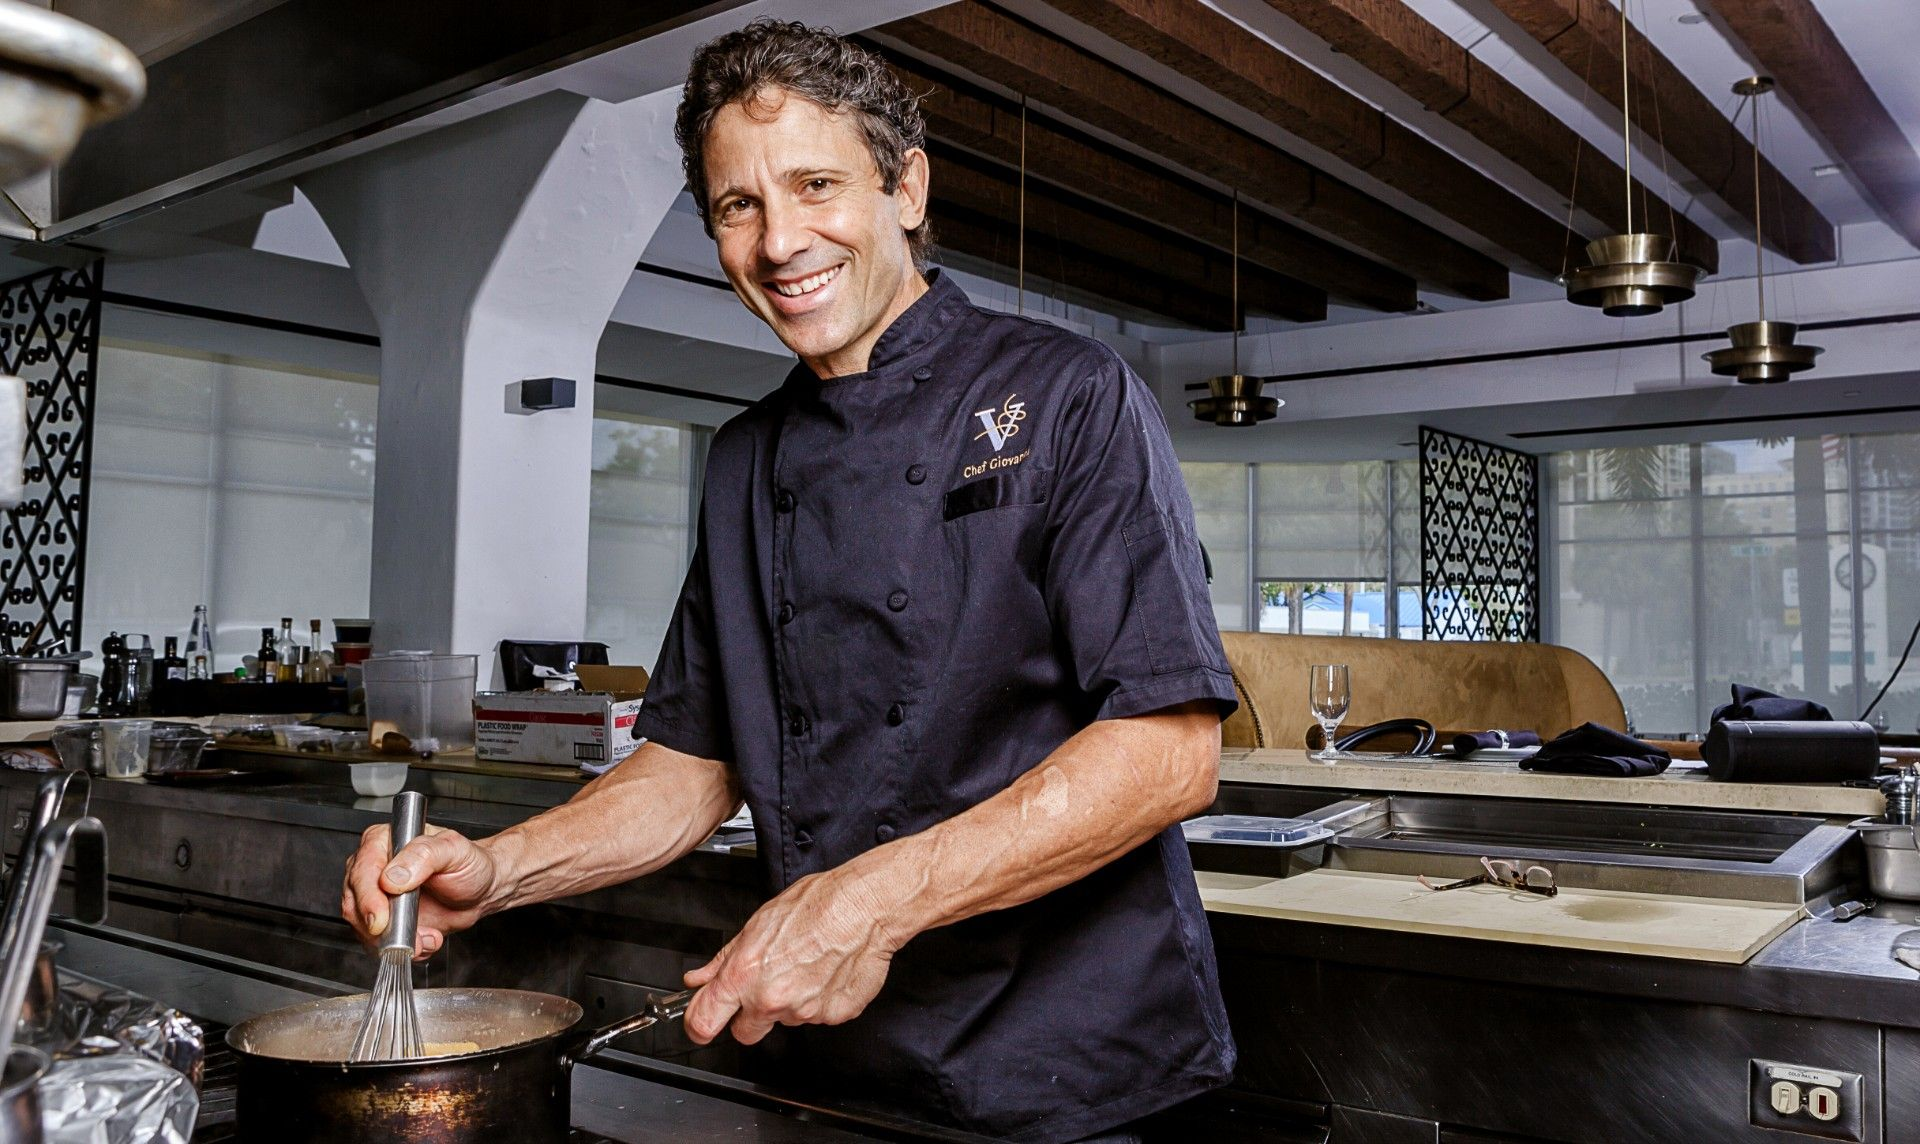 Picture of Chef Giovanni Rocchio of Valentino Cucina Italiana in Fort Lauderdale, Florida.